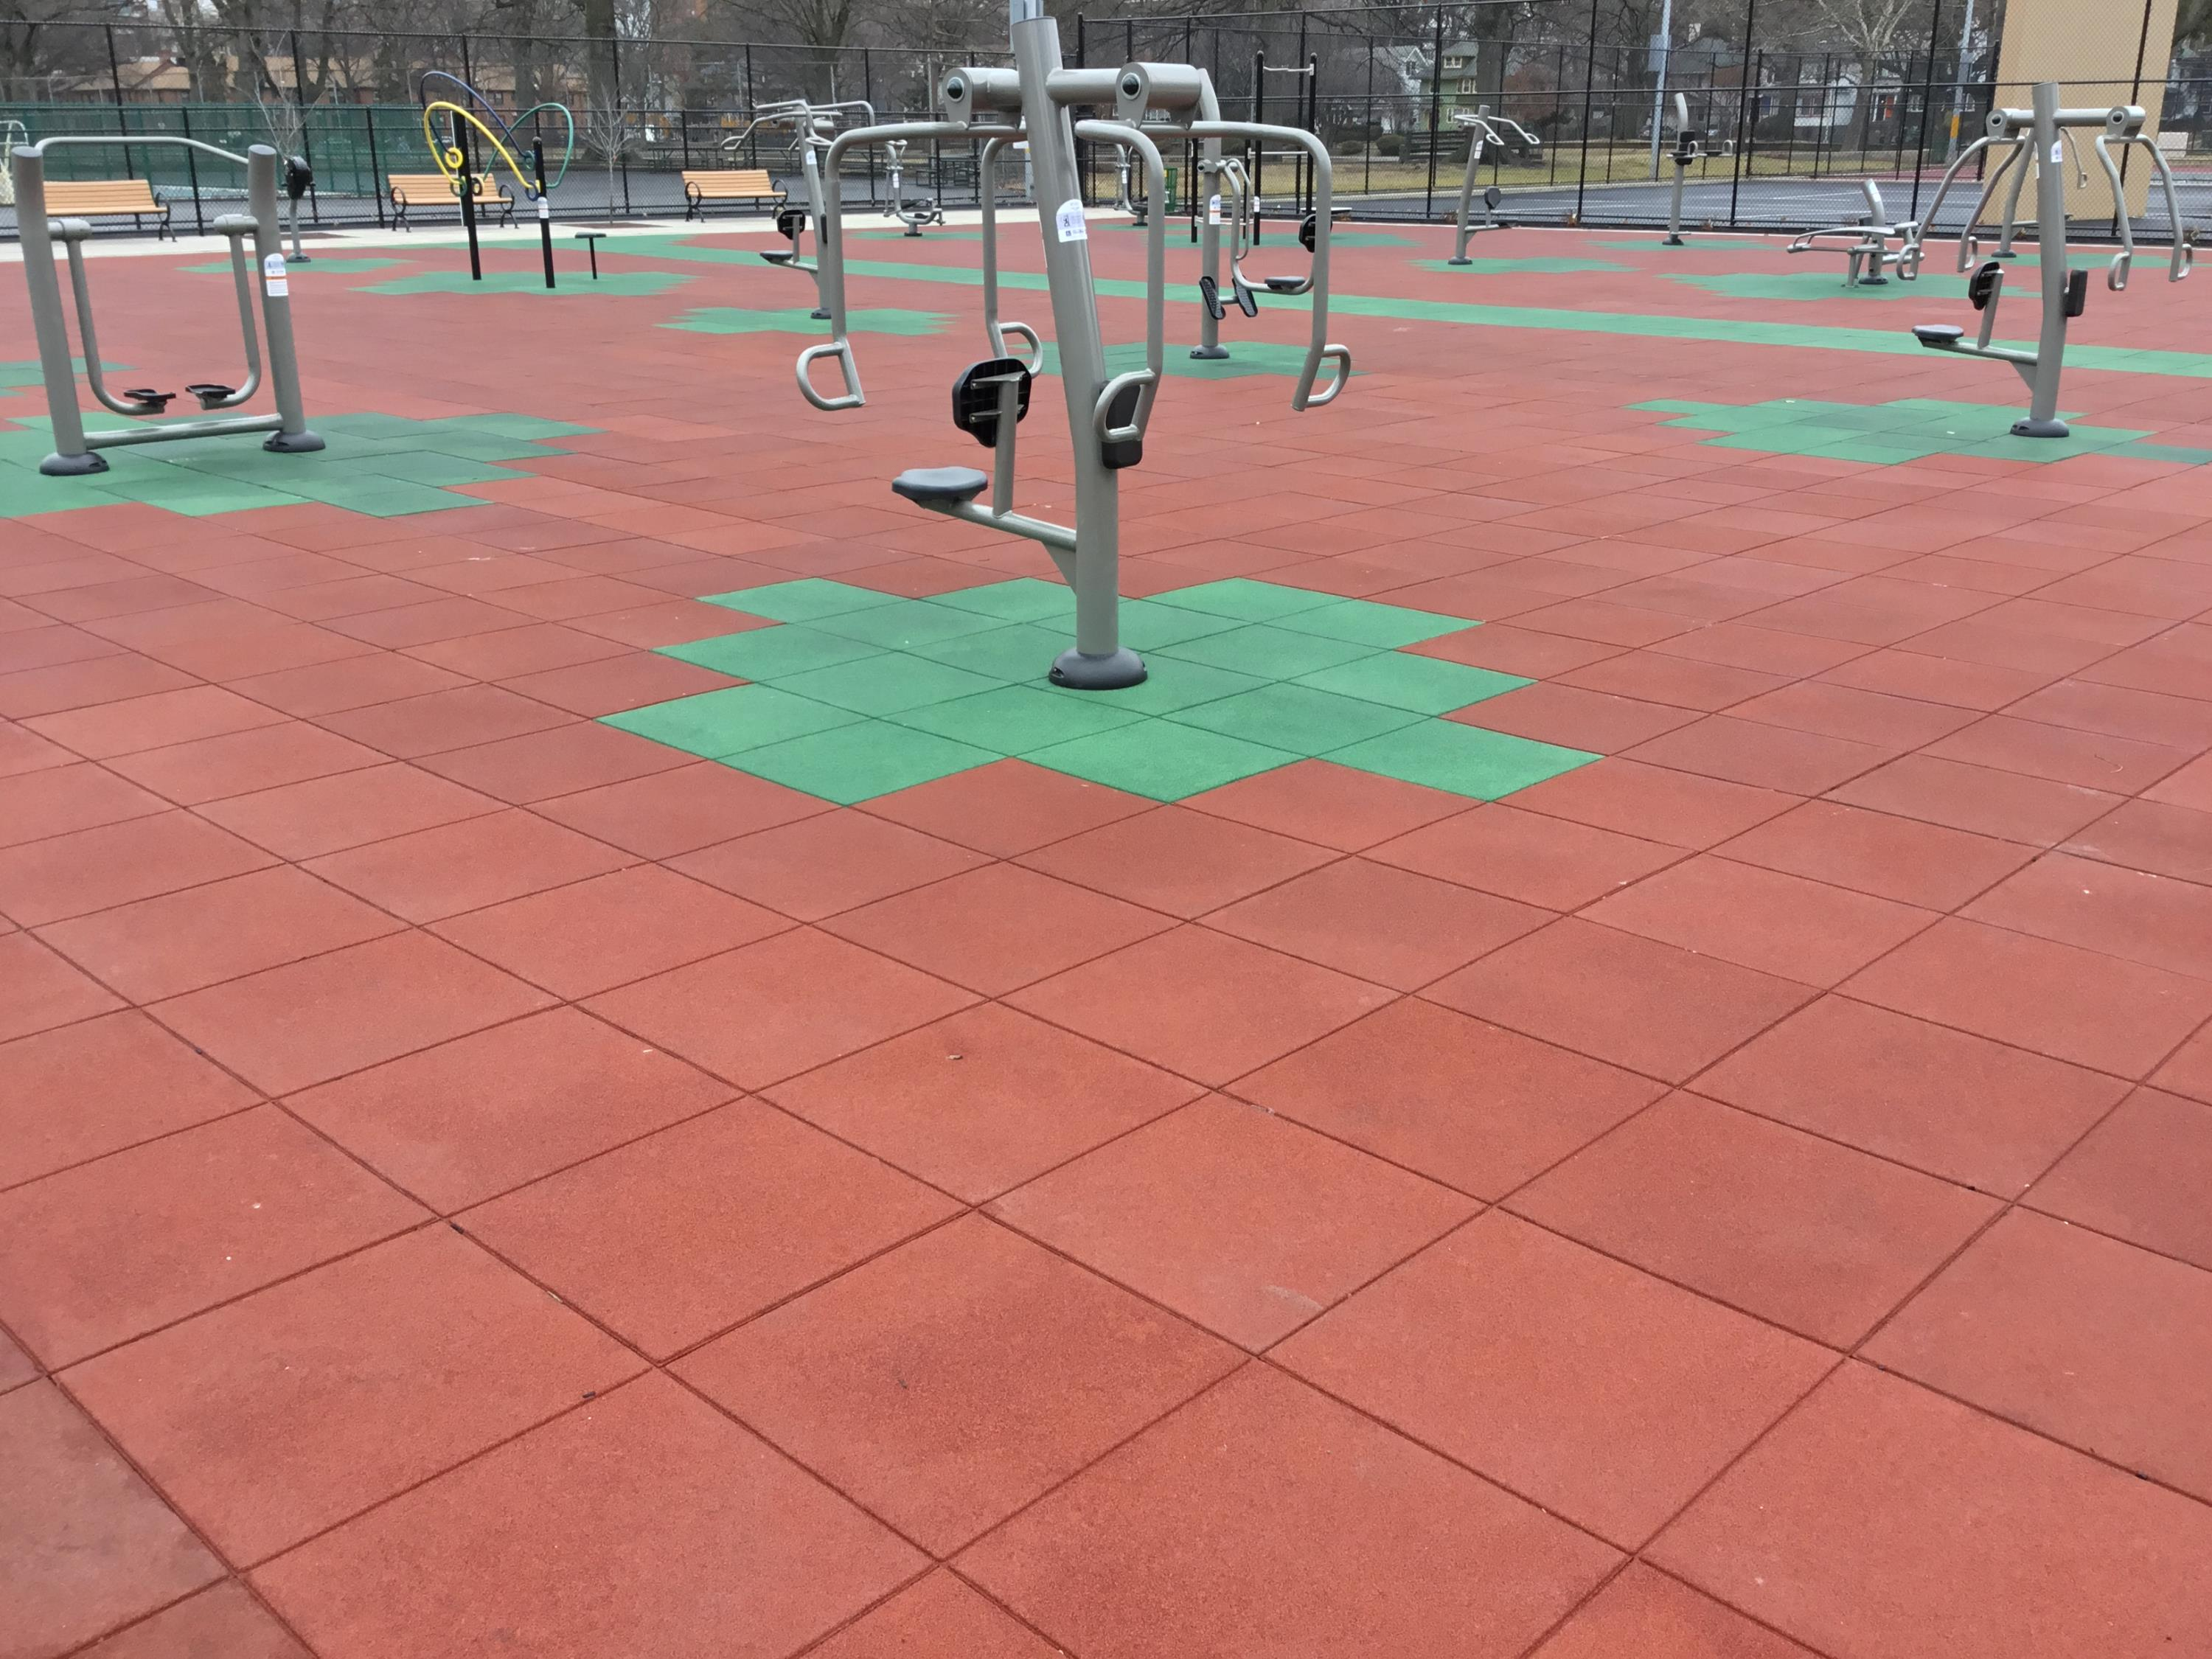 Unity on Muni Park Outdoor Fitness area using Pigmented Interlocking Tiles 4